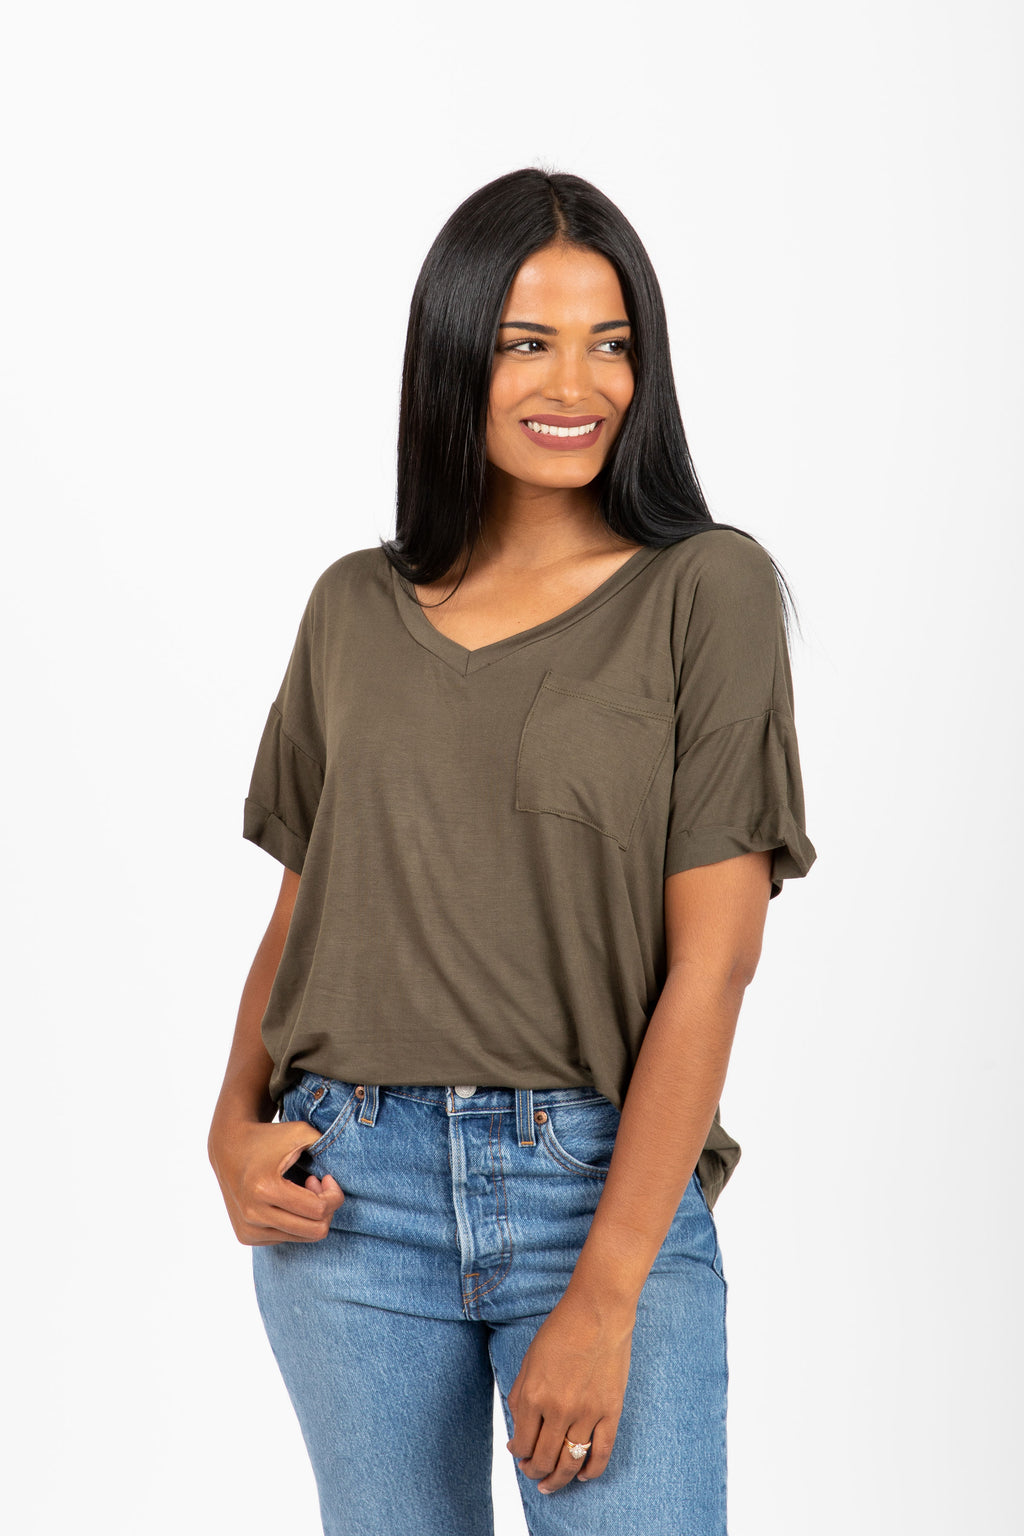 The Grin Pocket Blouse in Olive